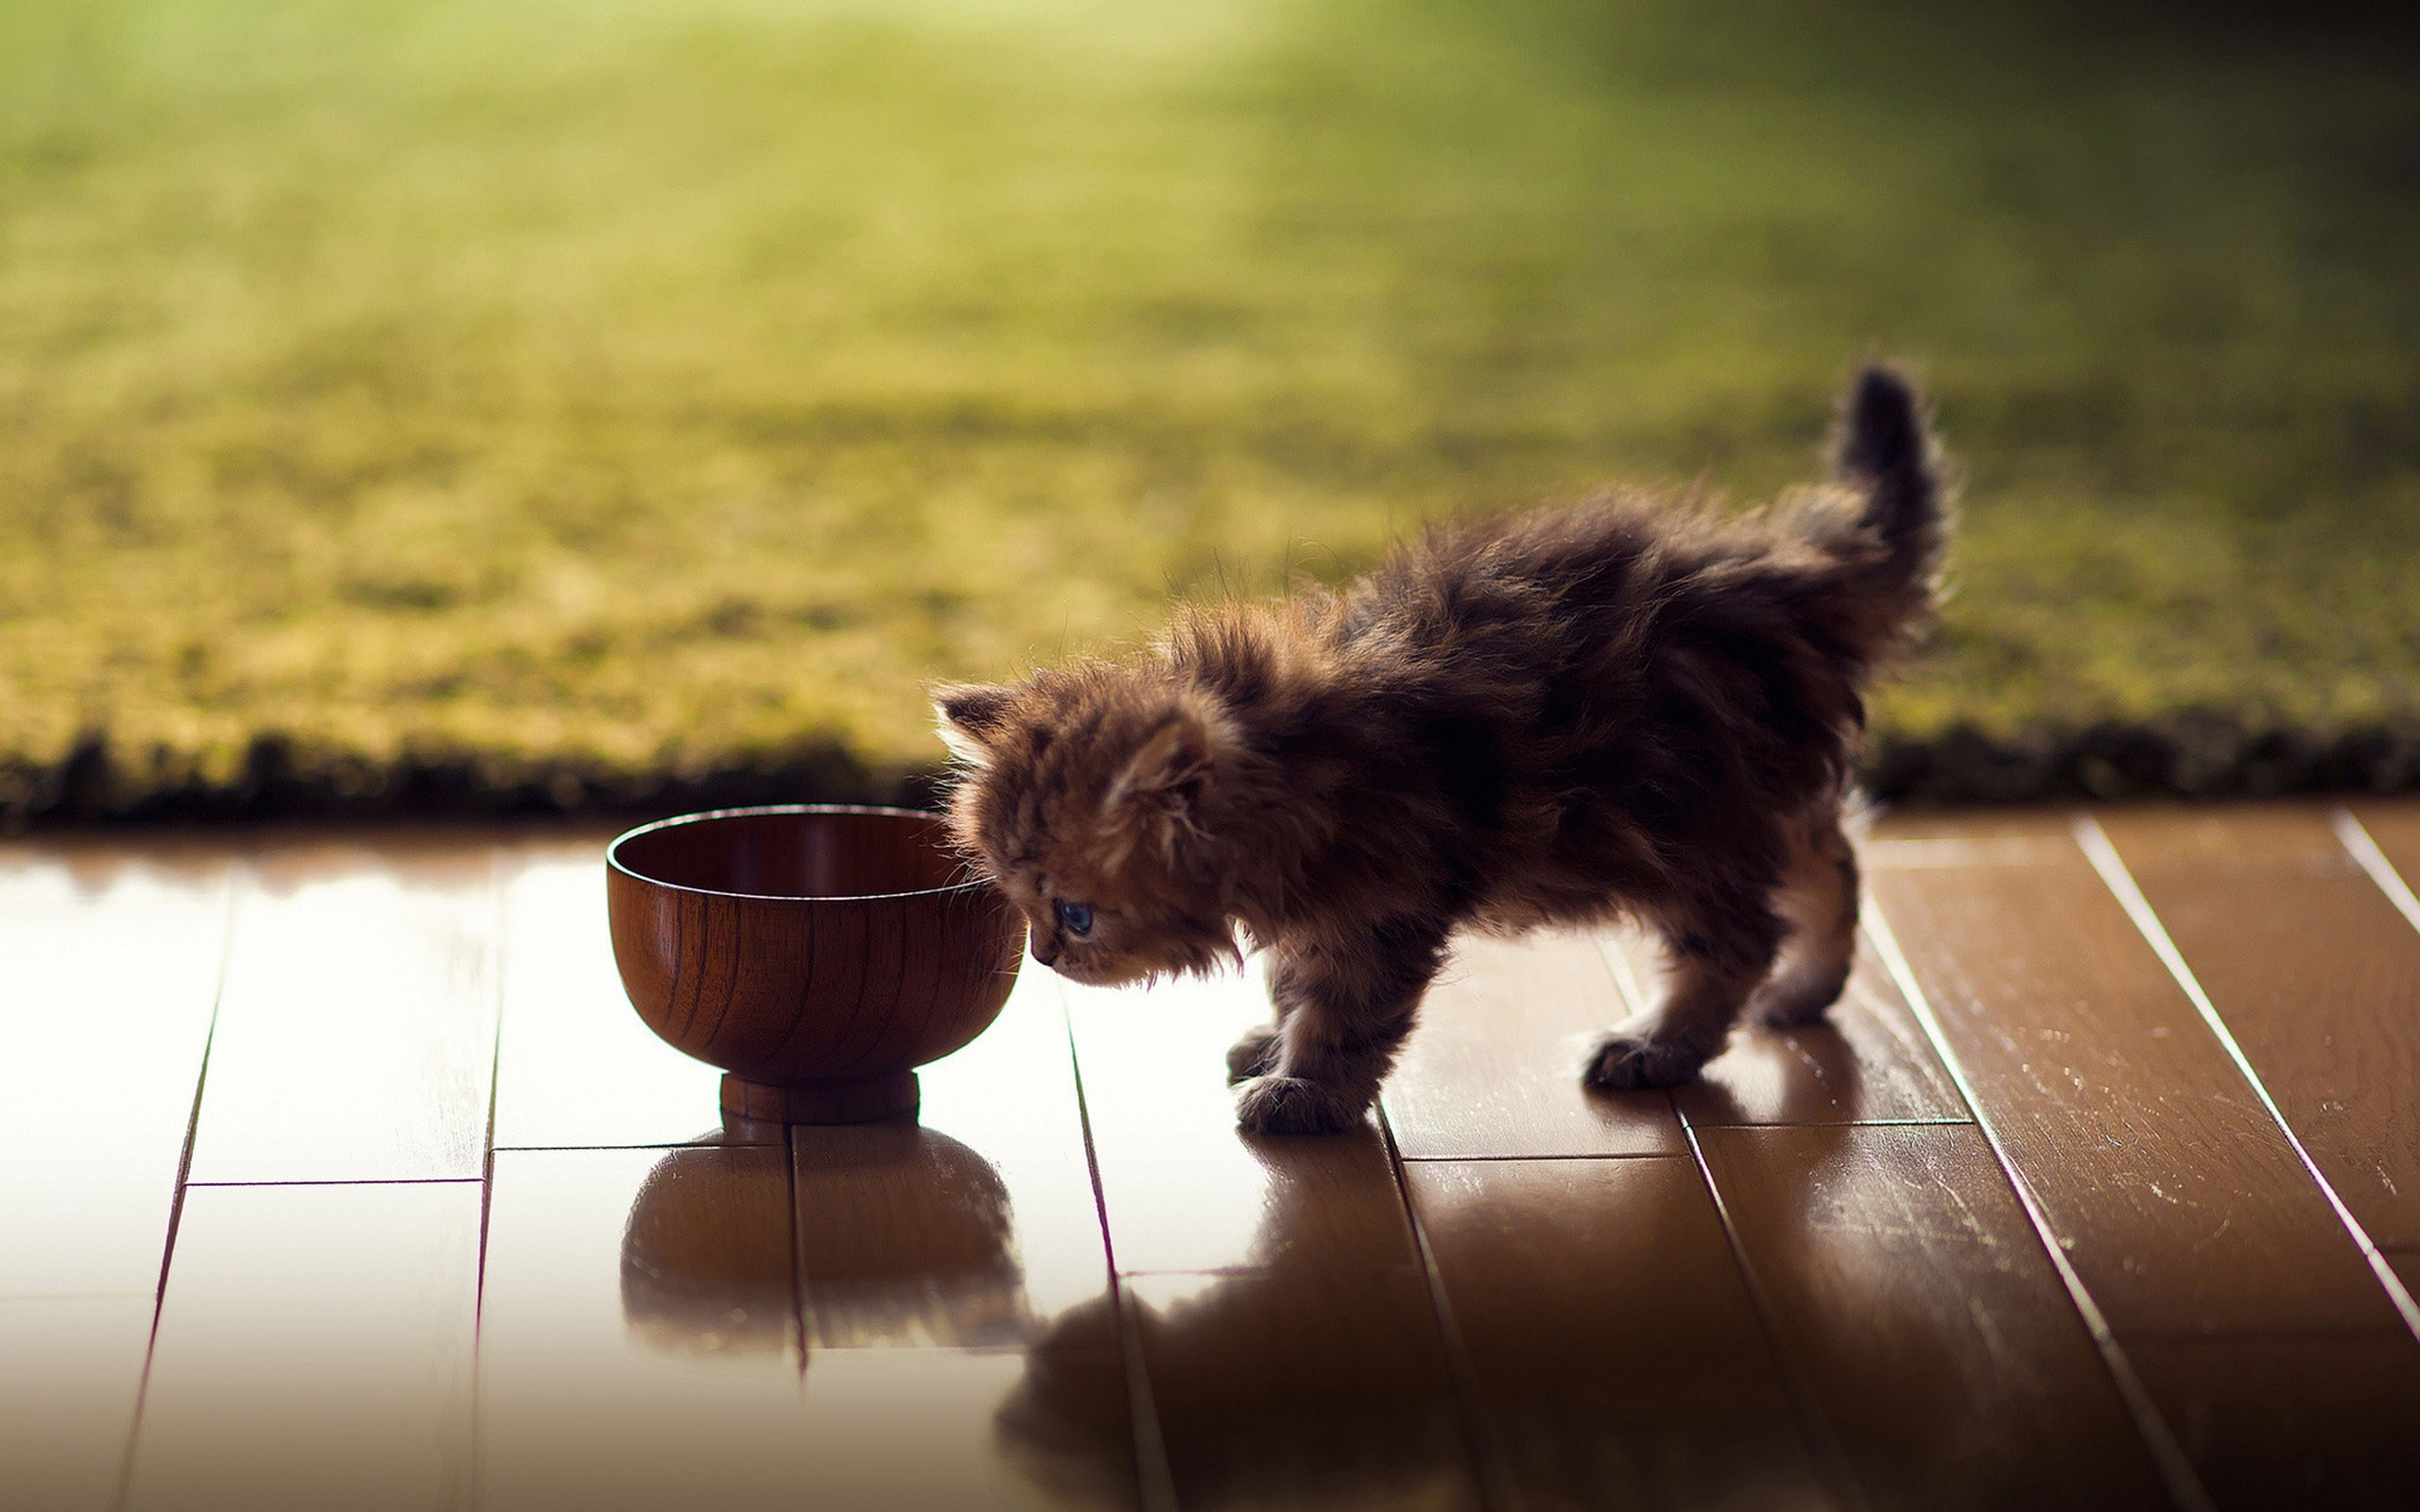 Wooden Floor Kitten Bowl Rug HD Wallpaper